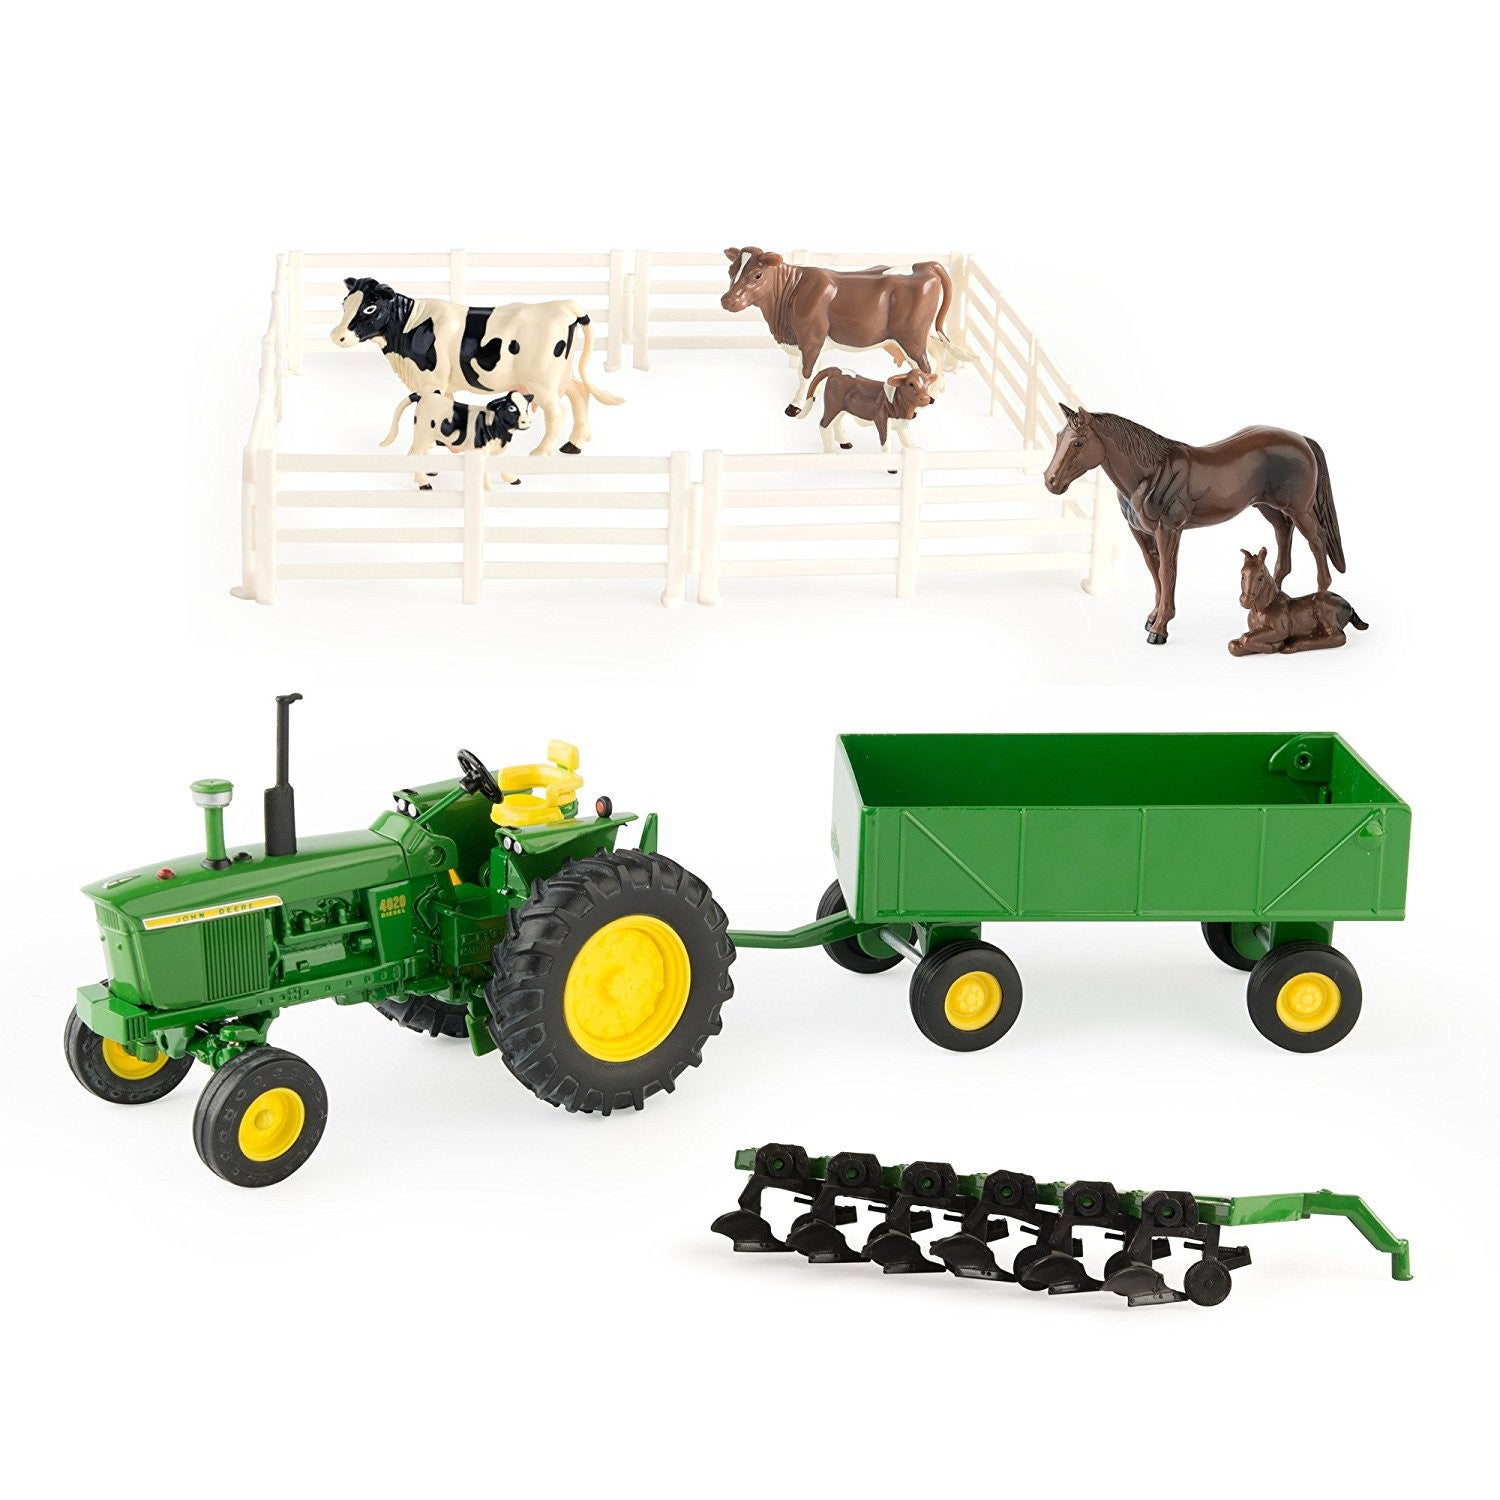 1/32 Scale John Deere Farm Toy Playset w/ 4020 Tractor - LP64818